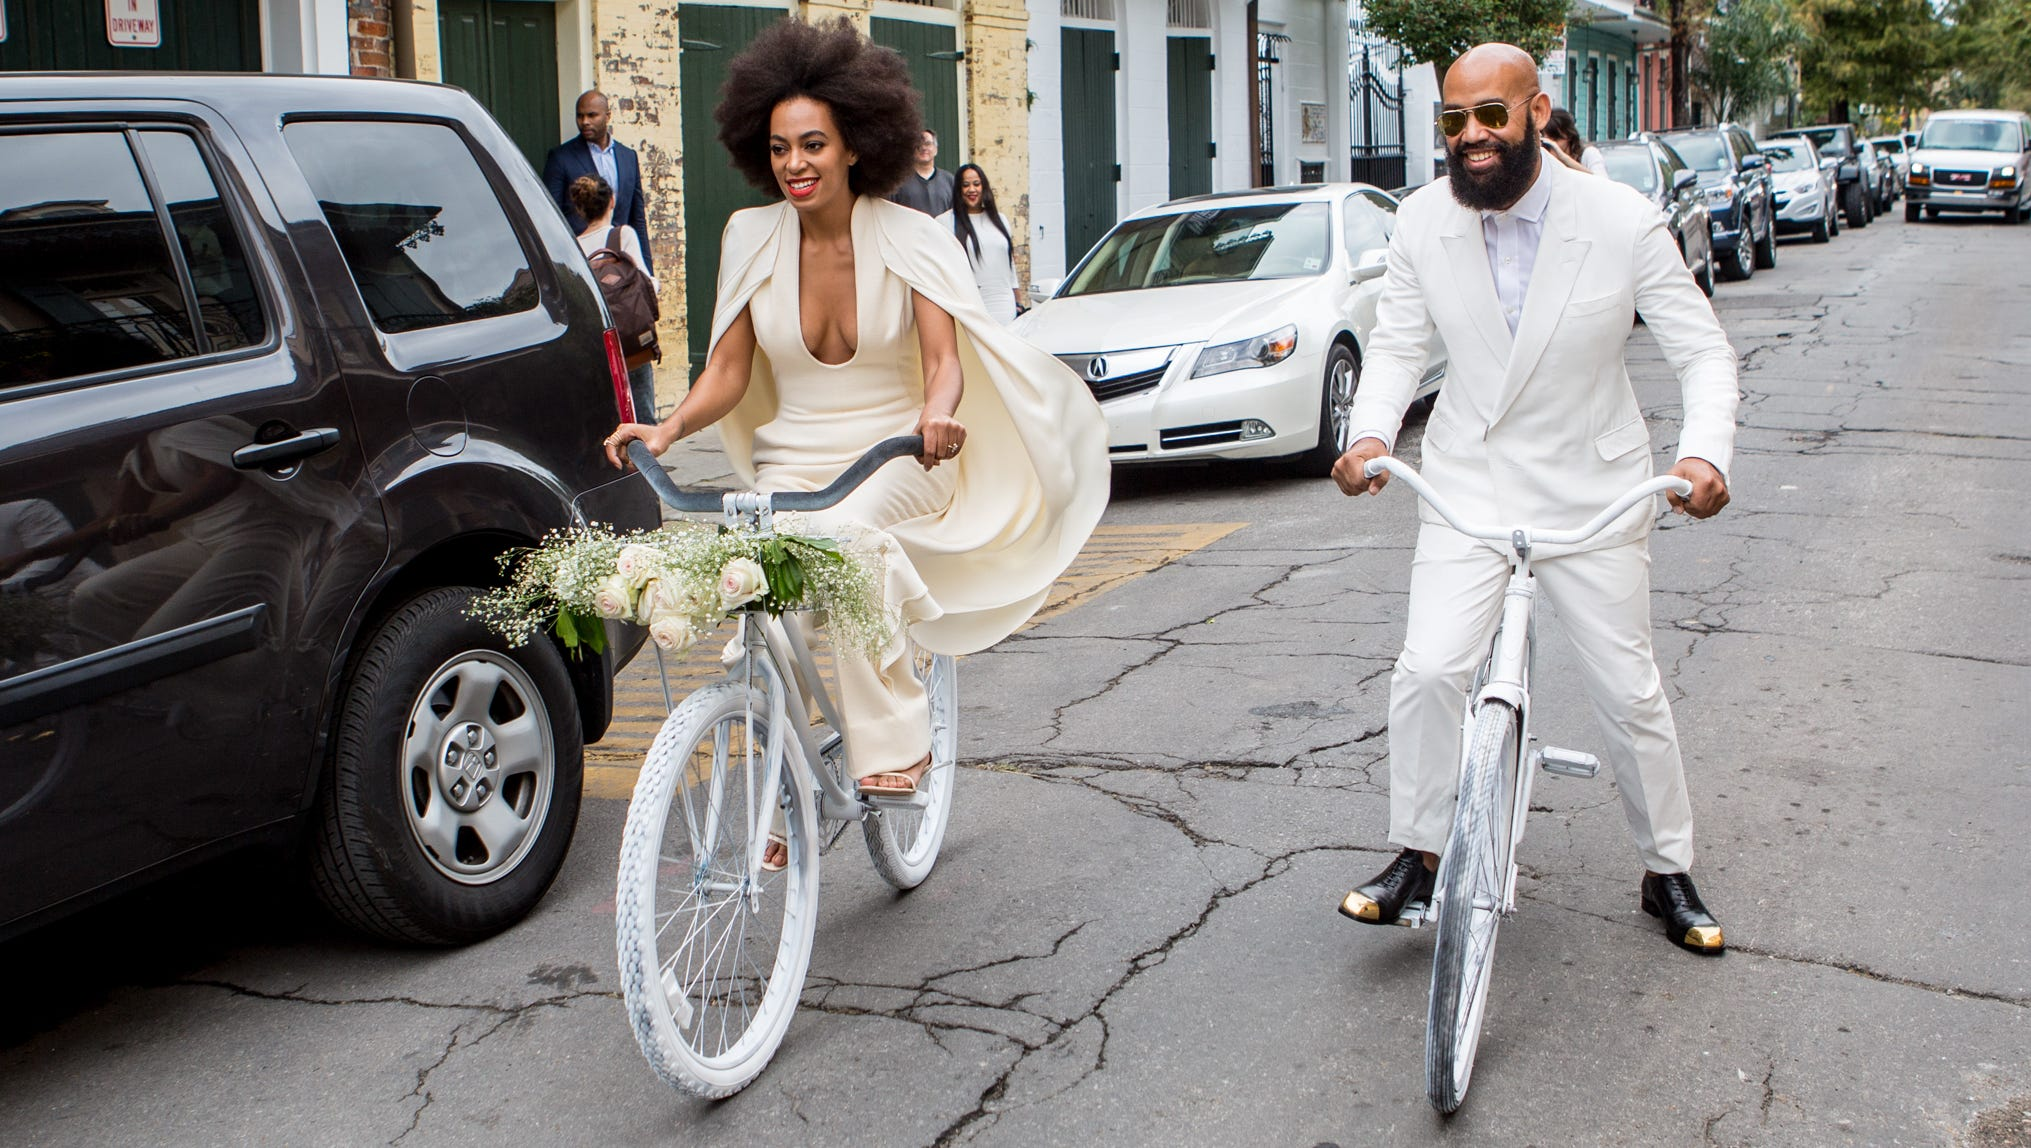 Be On Lookout For Solange Knowles' Wedding Ring Lost In Mardi Gras Parade: Solange Knowles New Wedding Ring At Reisefeber.org